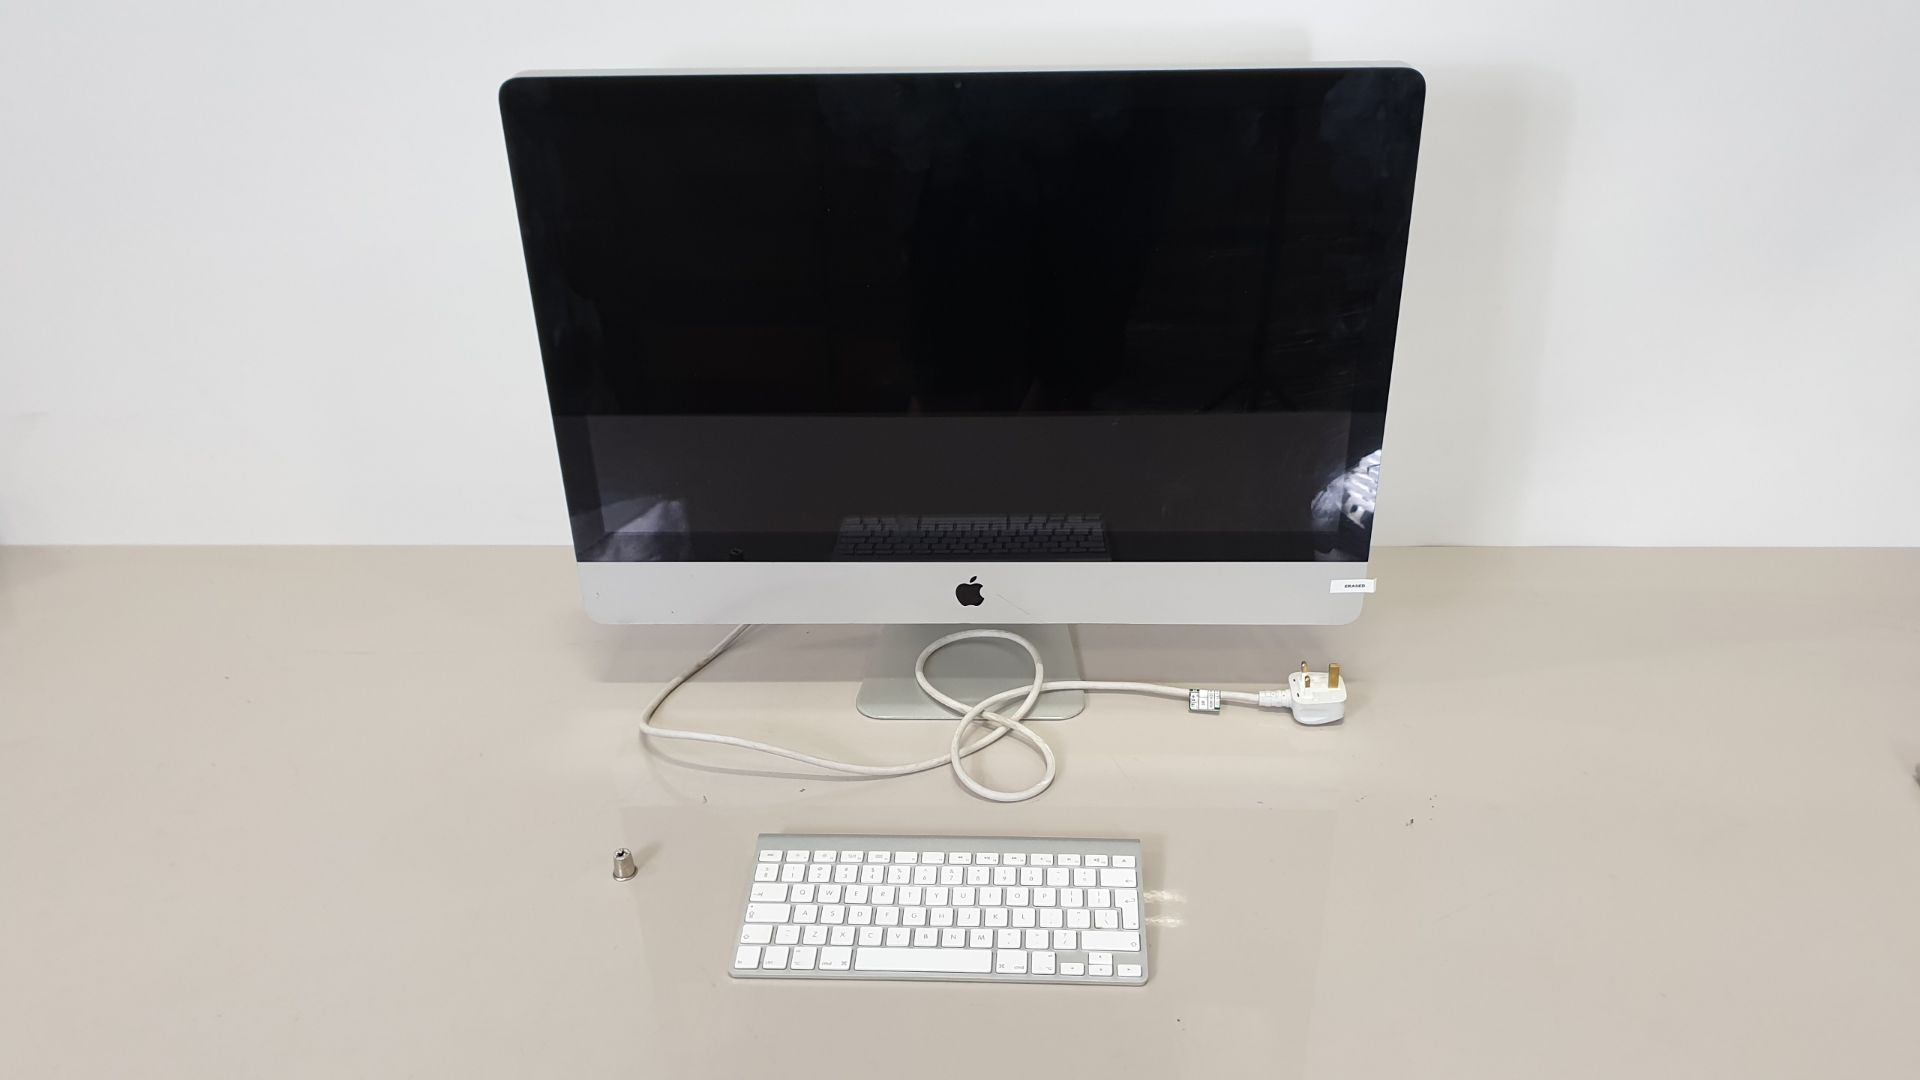 Lot 136 - SILVER APPLE IMAC (MODEL - A1312) (SERIAL NUMBER - W804438RHJX) WITH APPLE KEYBOARD (MODEL